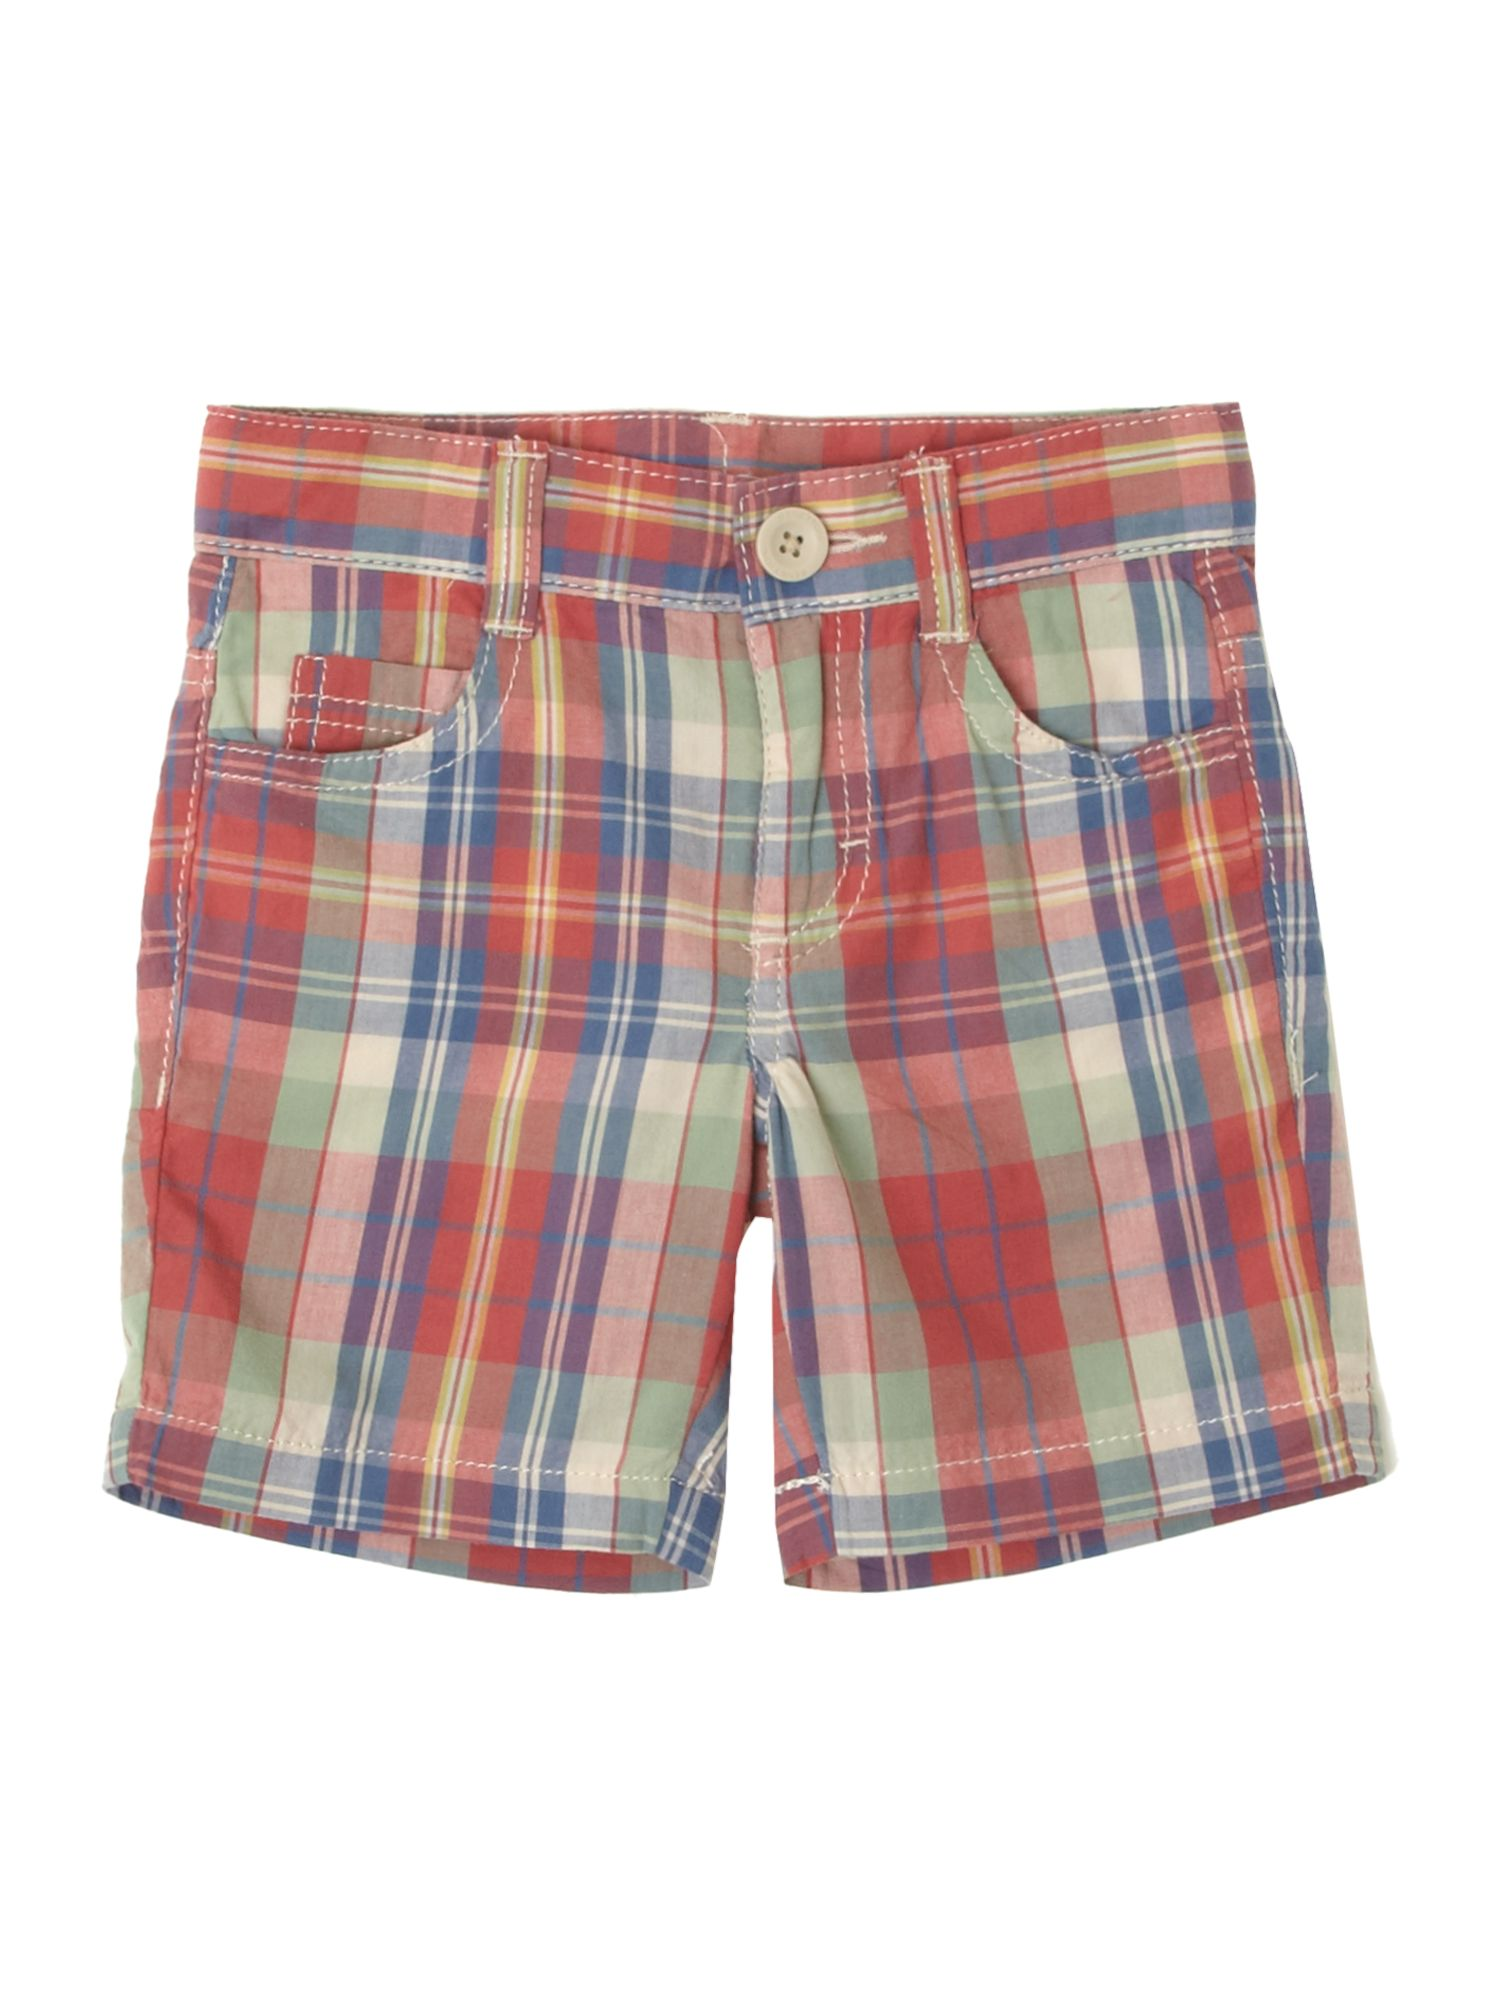 Boys`s smart checked shorts